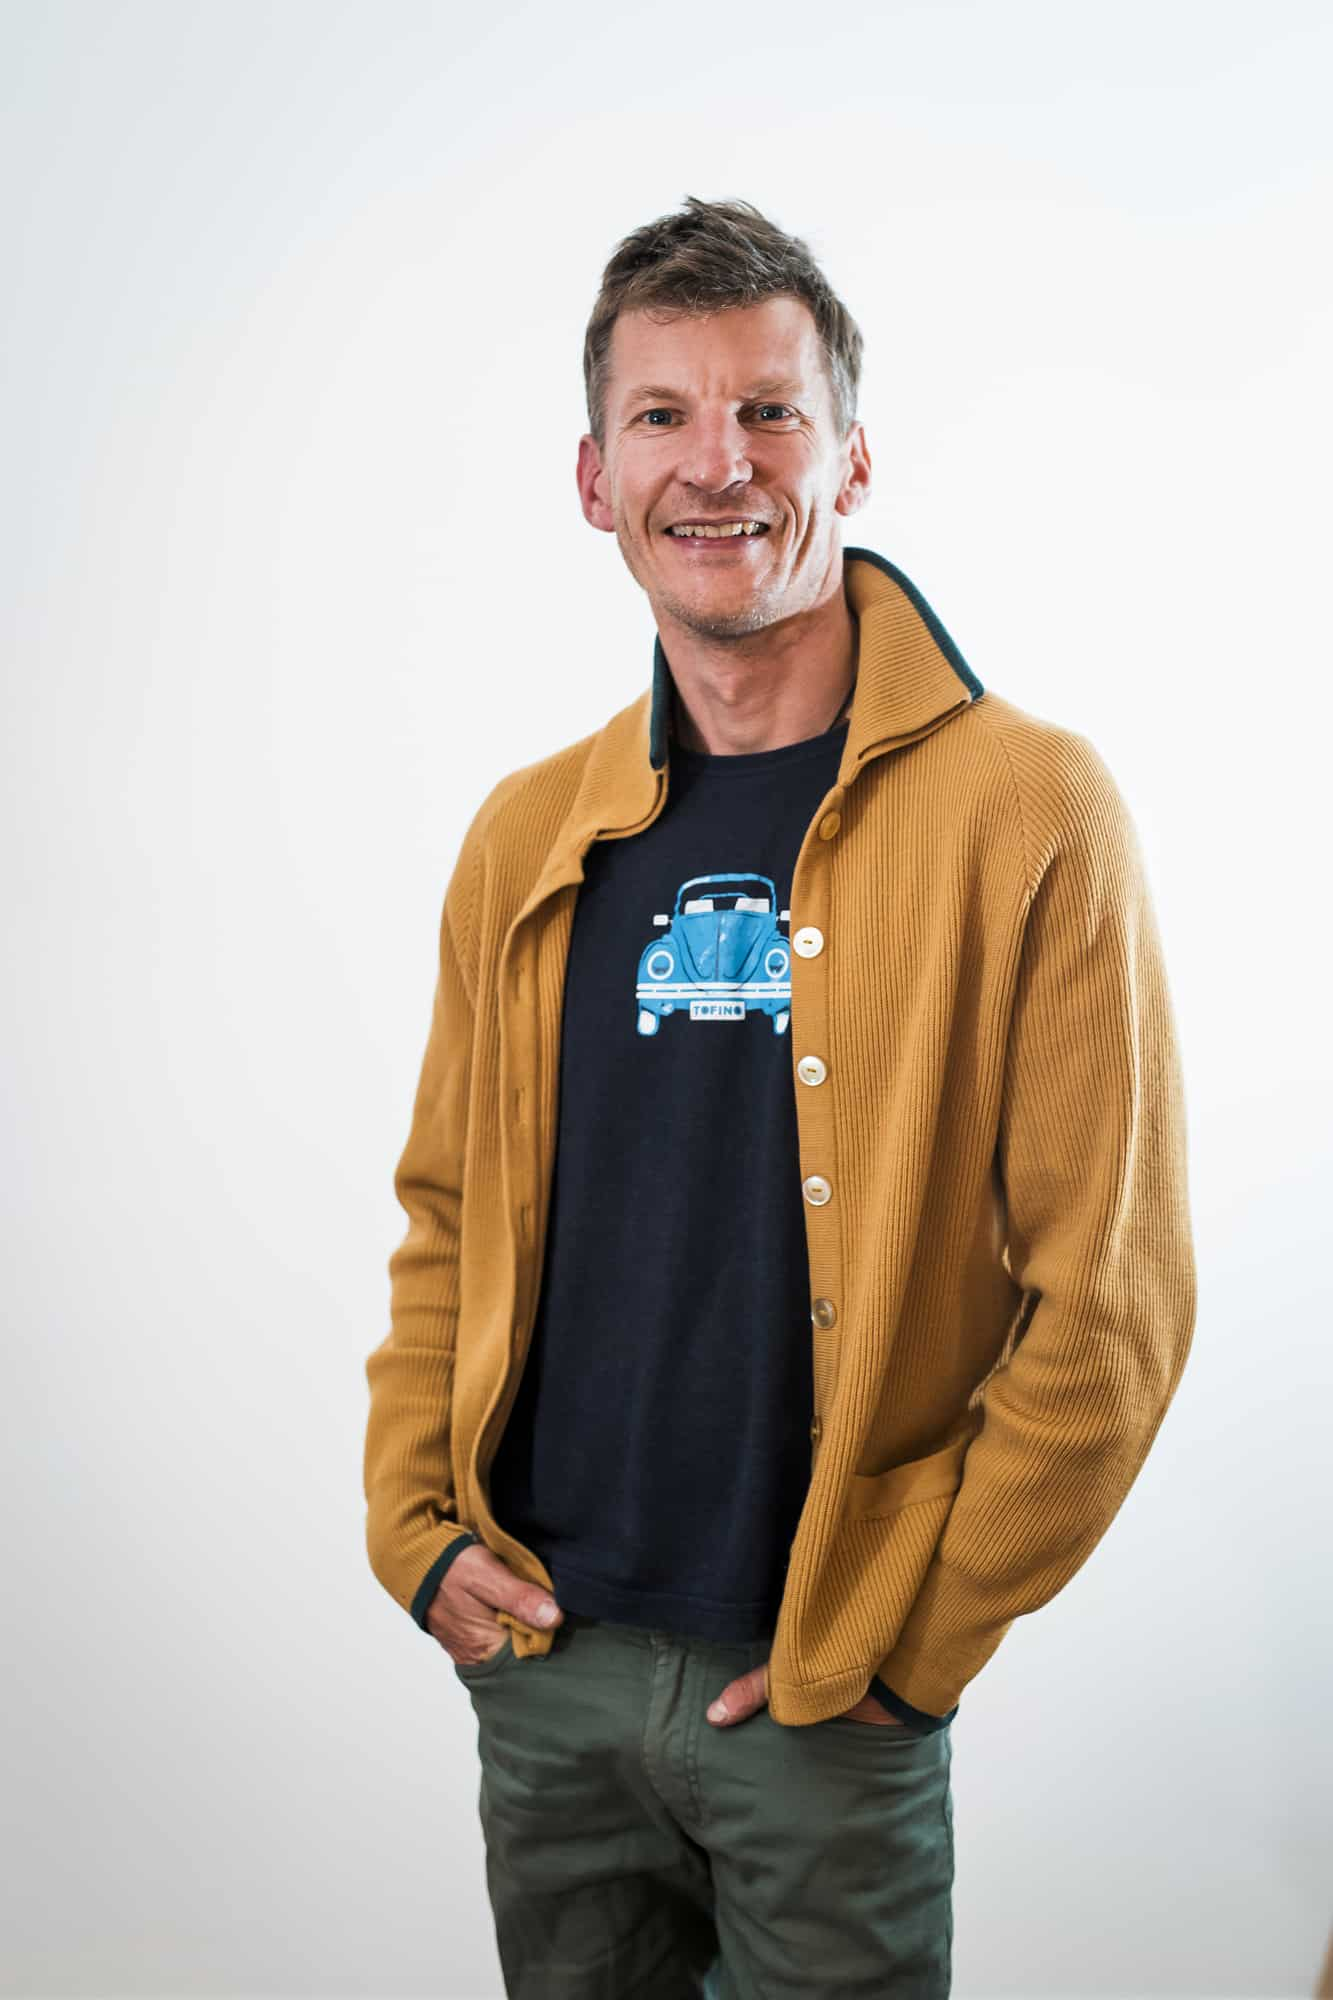 The-common-coworking-squamish-Peter-Buchholz-Owner